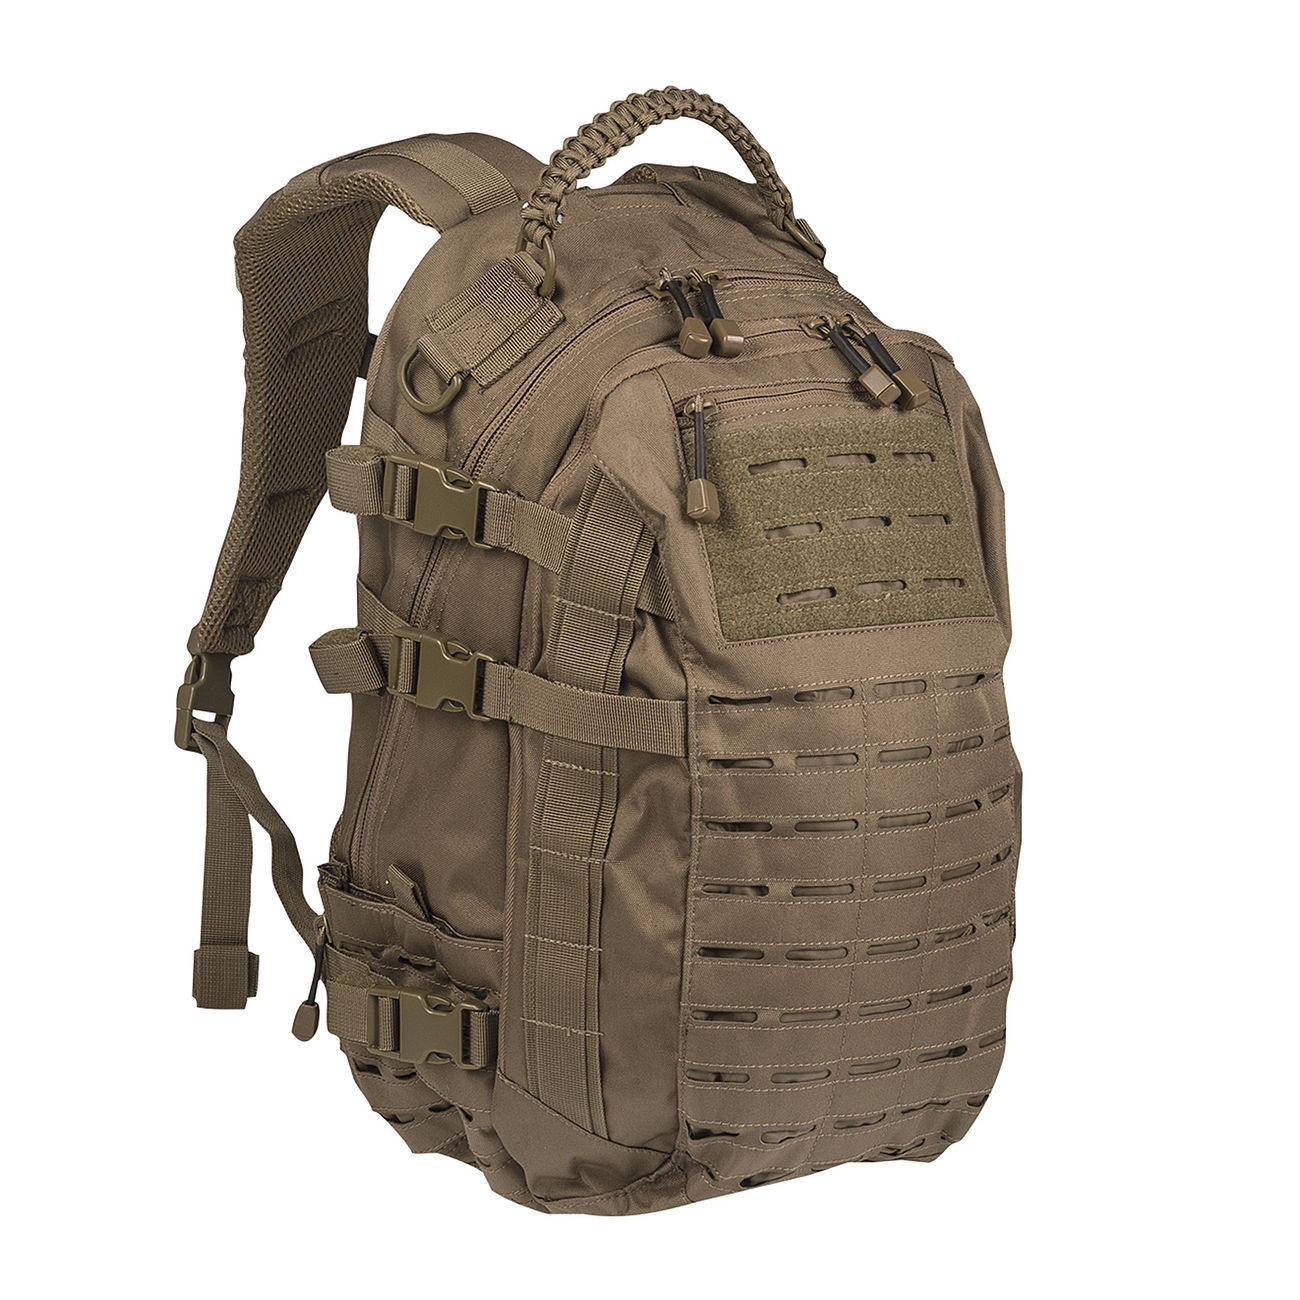 01a694404b136 Mil-Tec Rucksack Mission Pack Laser Cut Large dark coyote günstig ...